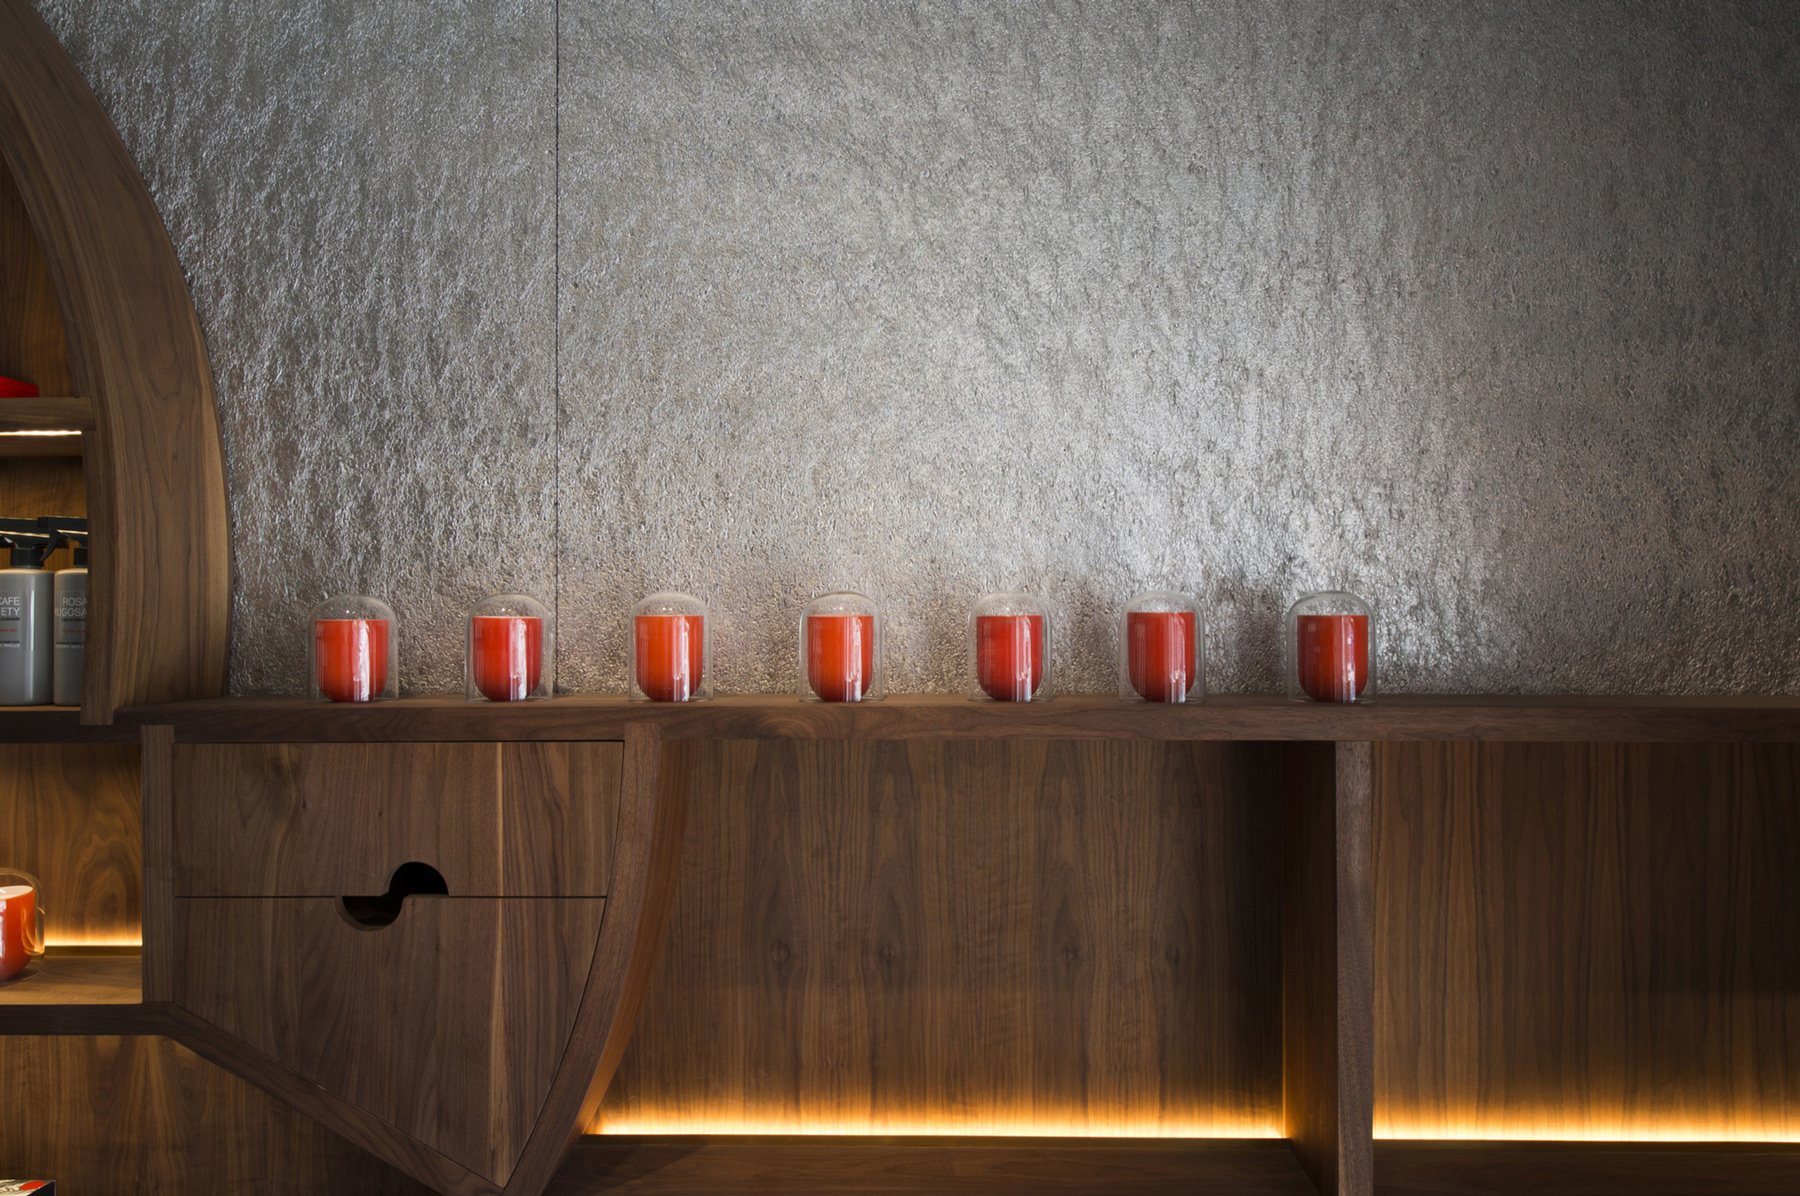 Frederic Malle / Steven Holl Architects (11)